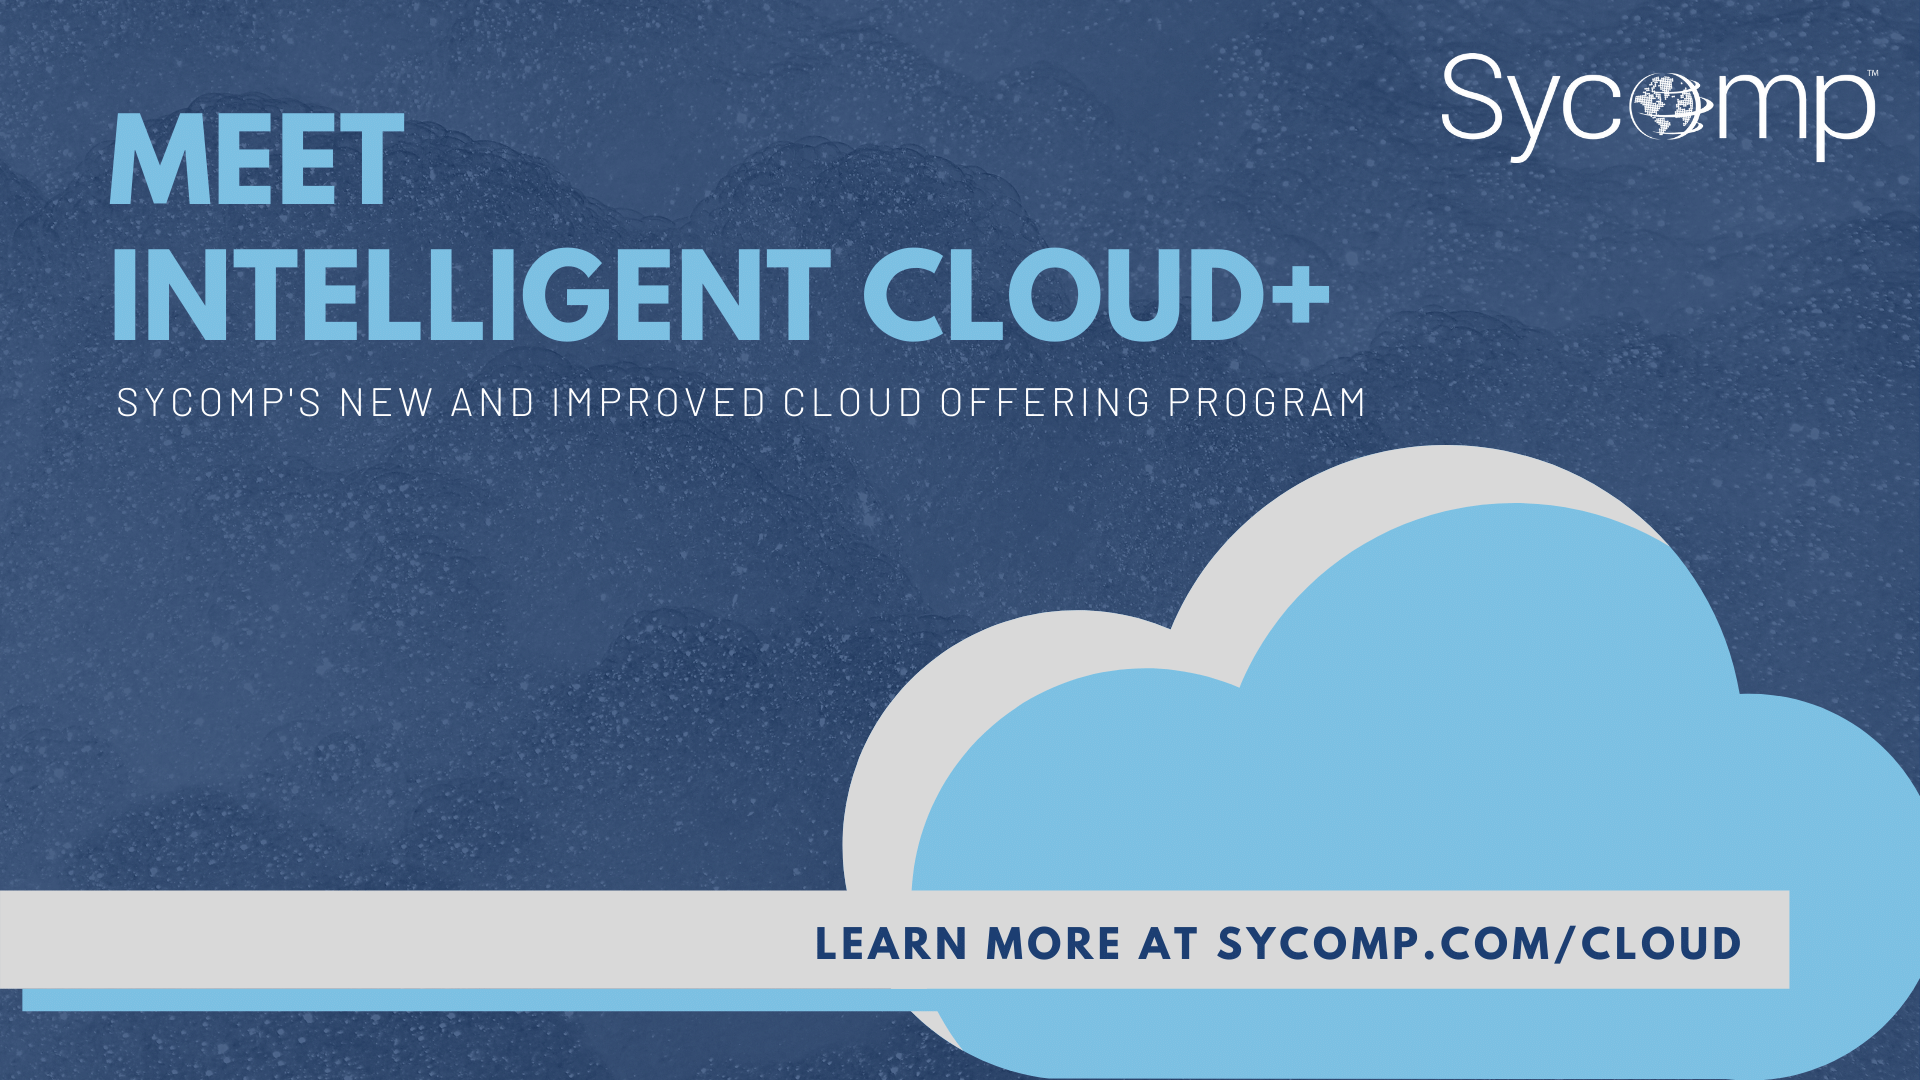 Intelligent Cloud Plus (Intelligent Cloud+), a new and improved Sycomp offering with a variety of benefits that enables organizations to consume the public cloud